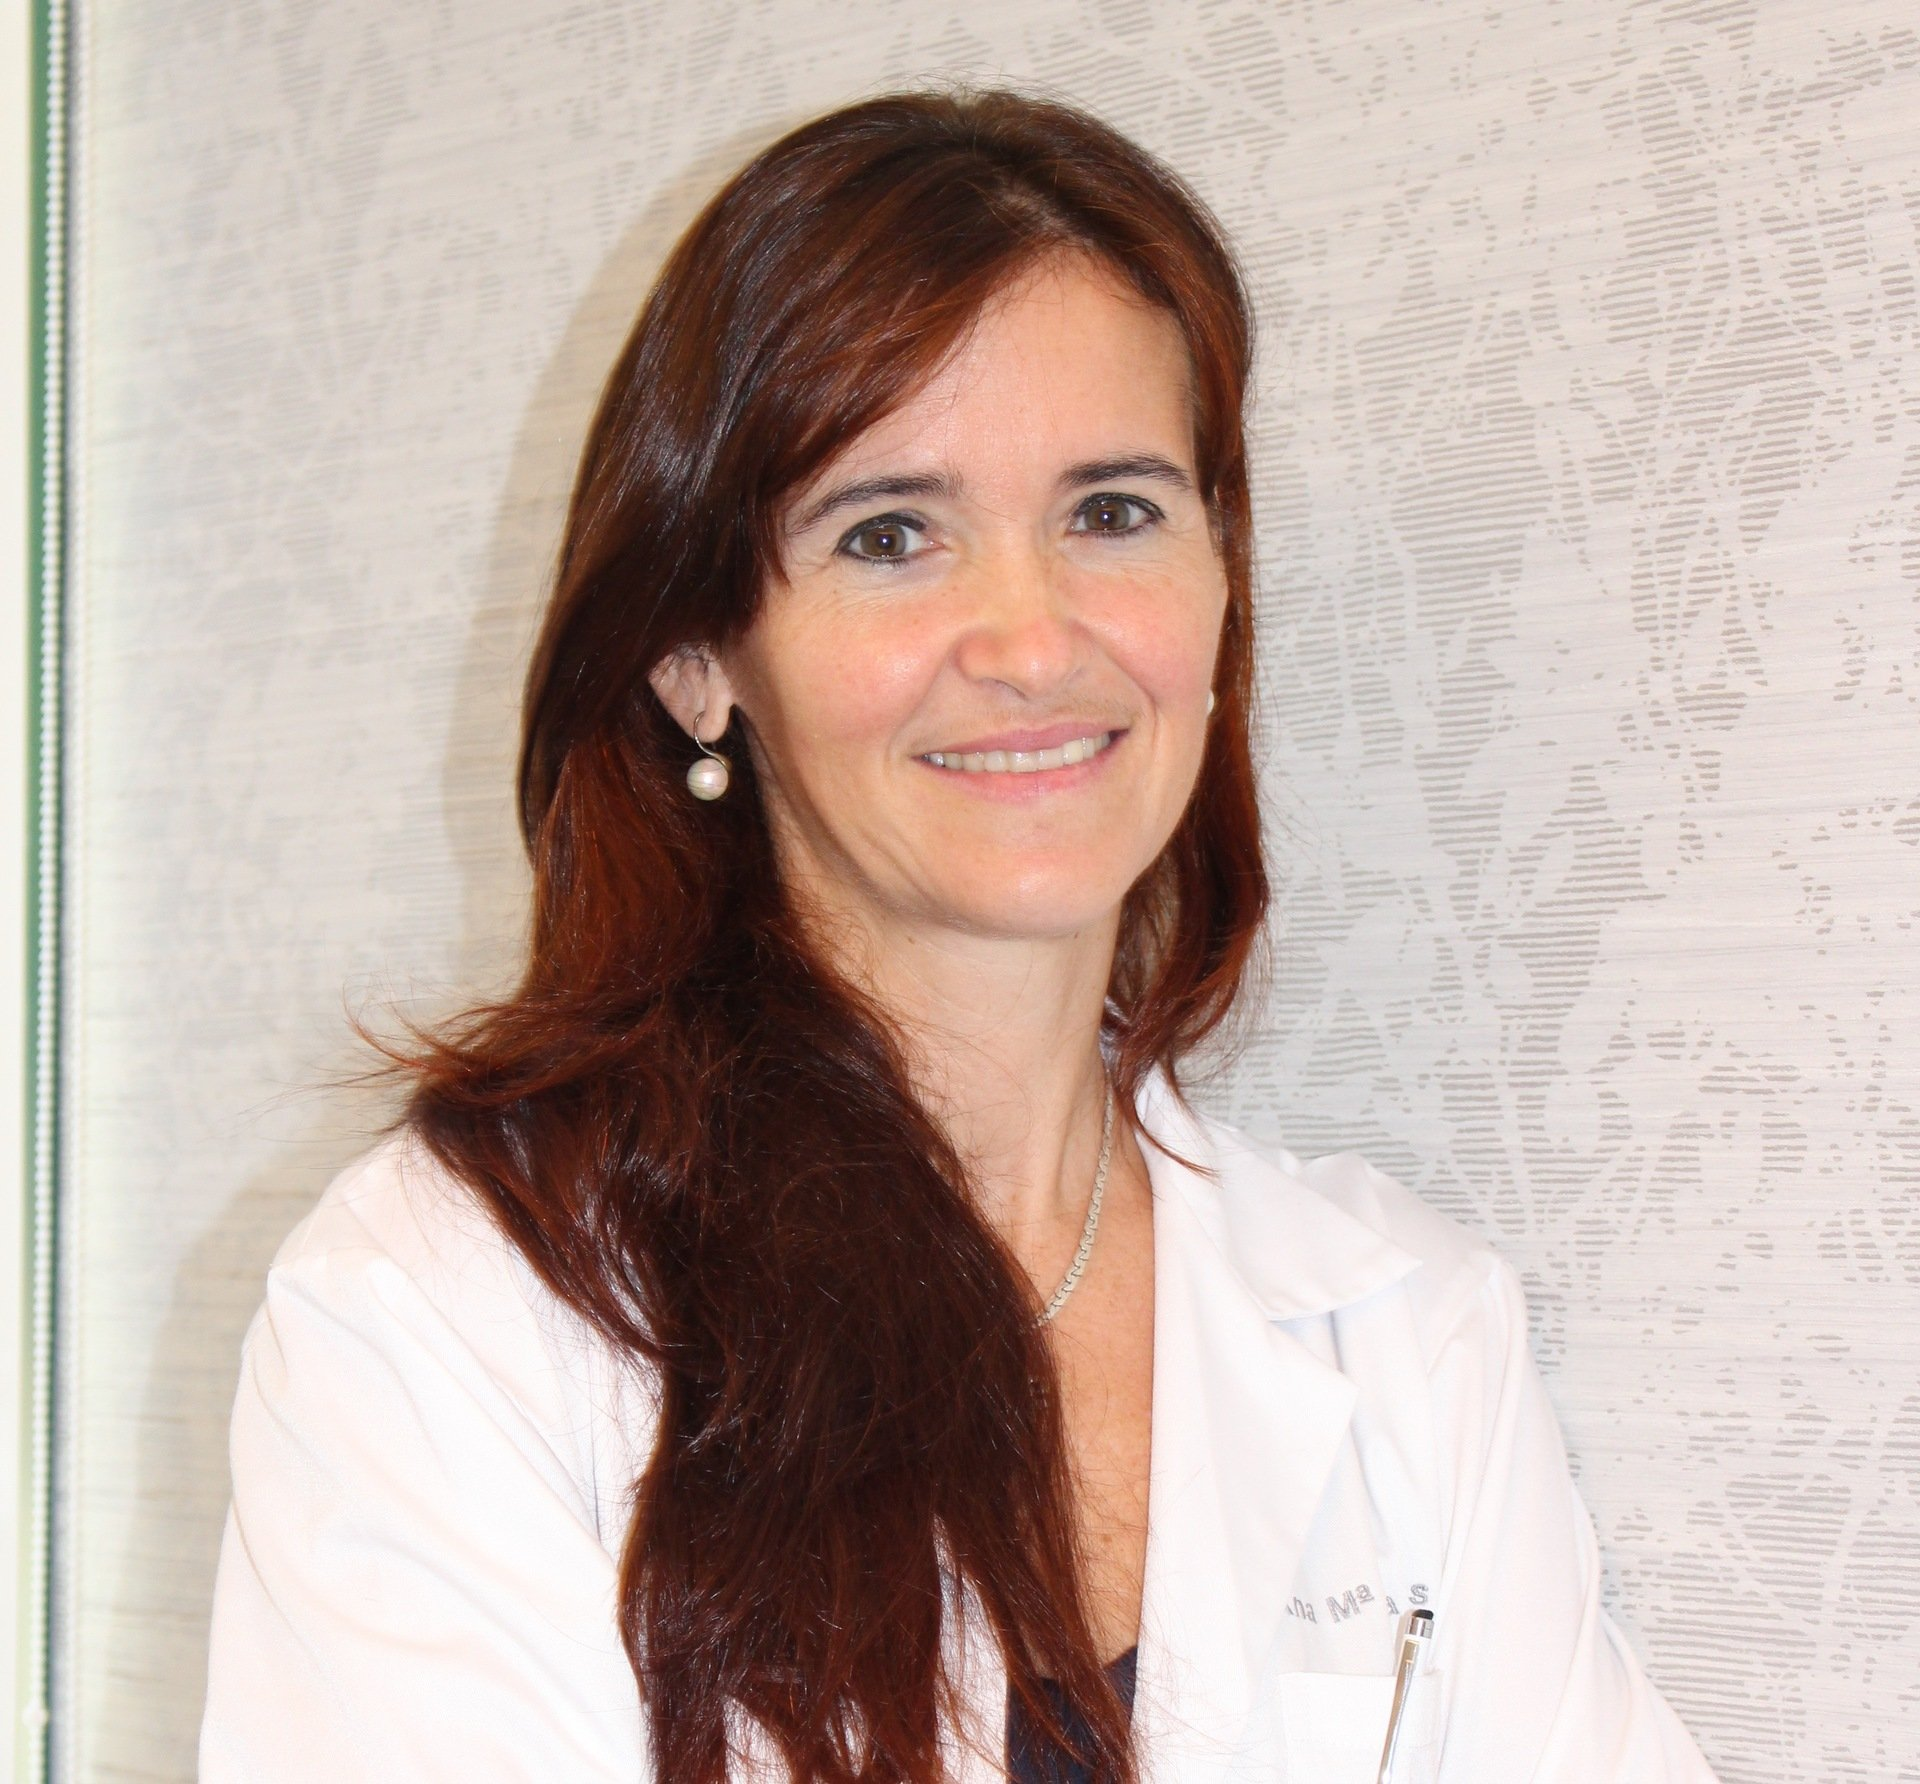 Ana María Oliva expert in Energetic Medicine at SHA Wellness Clinic